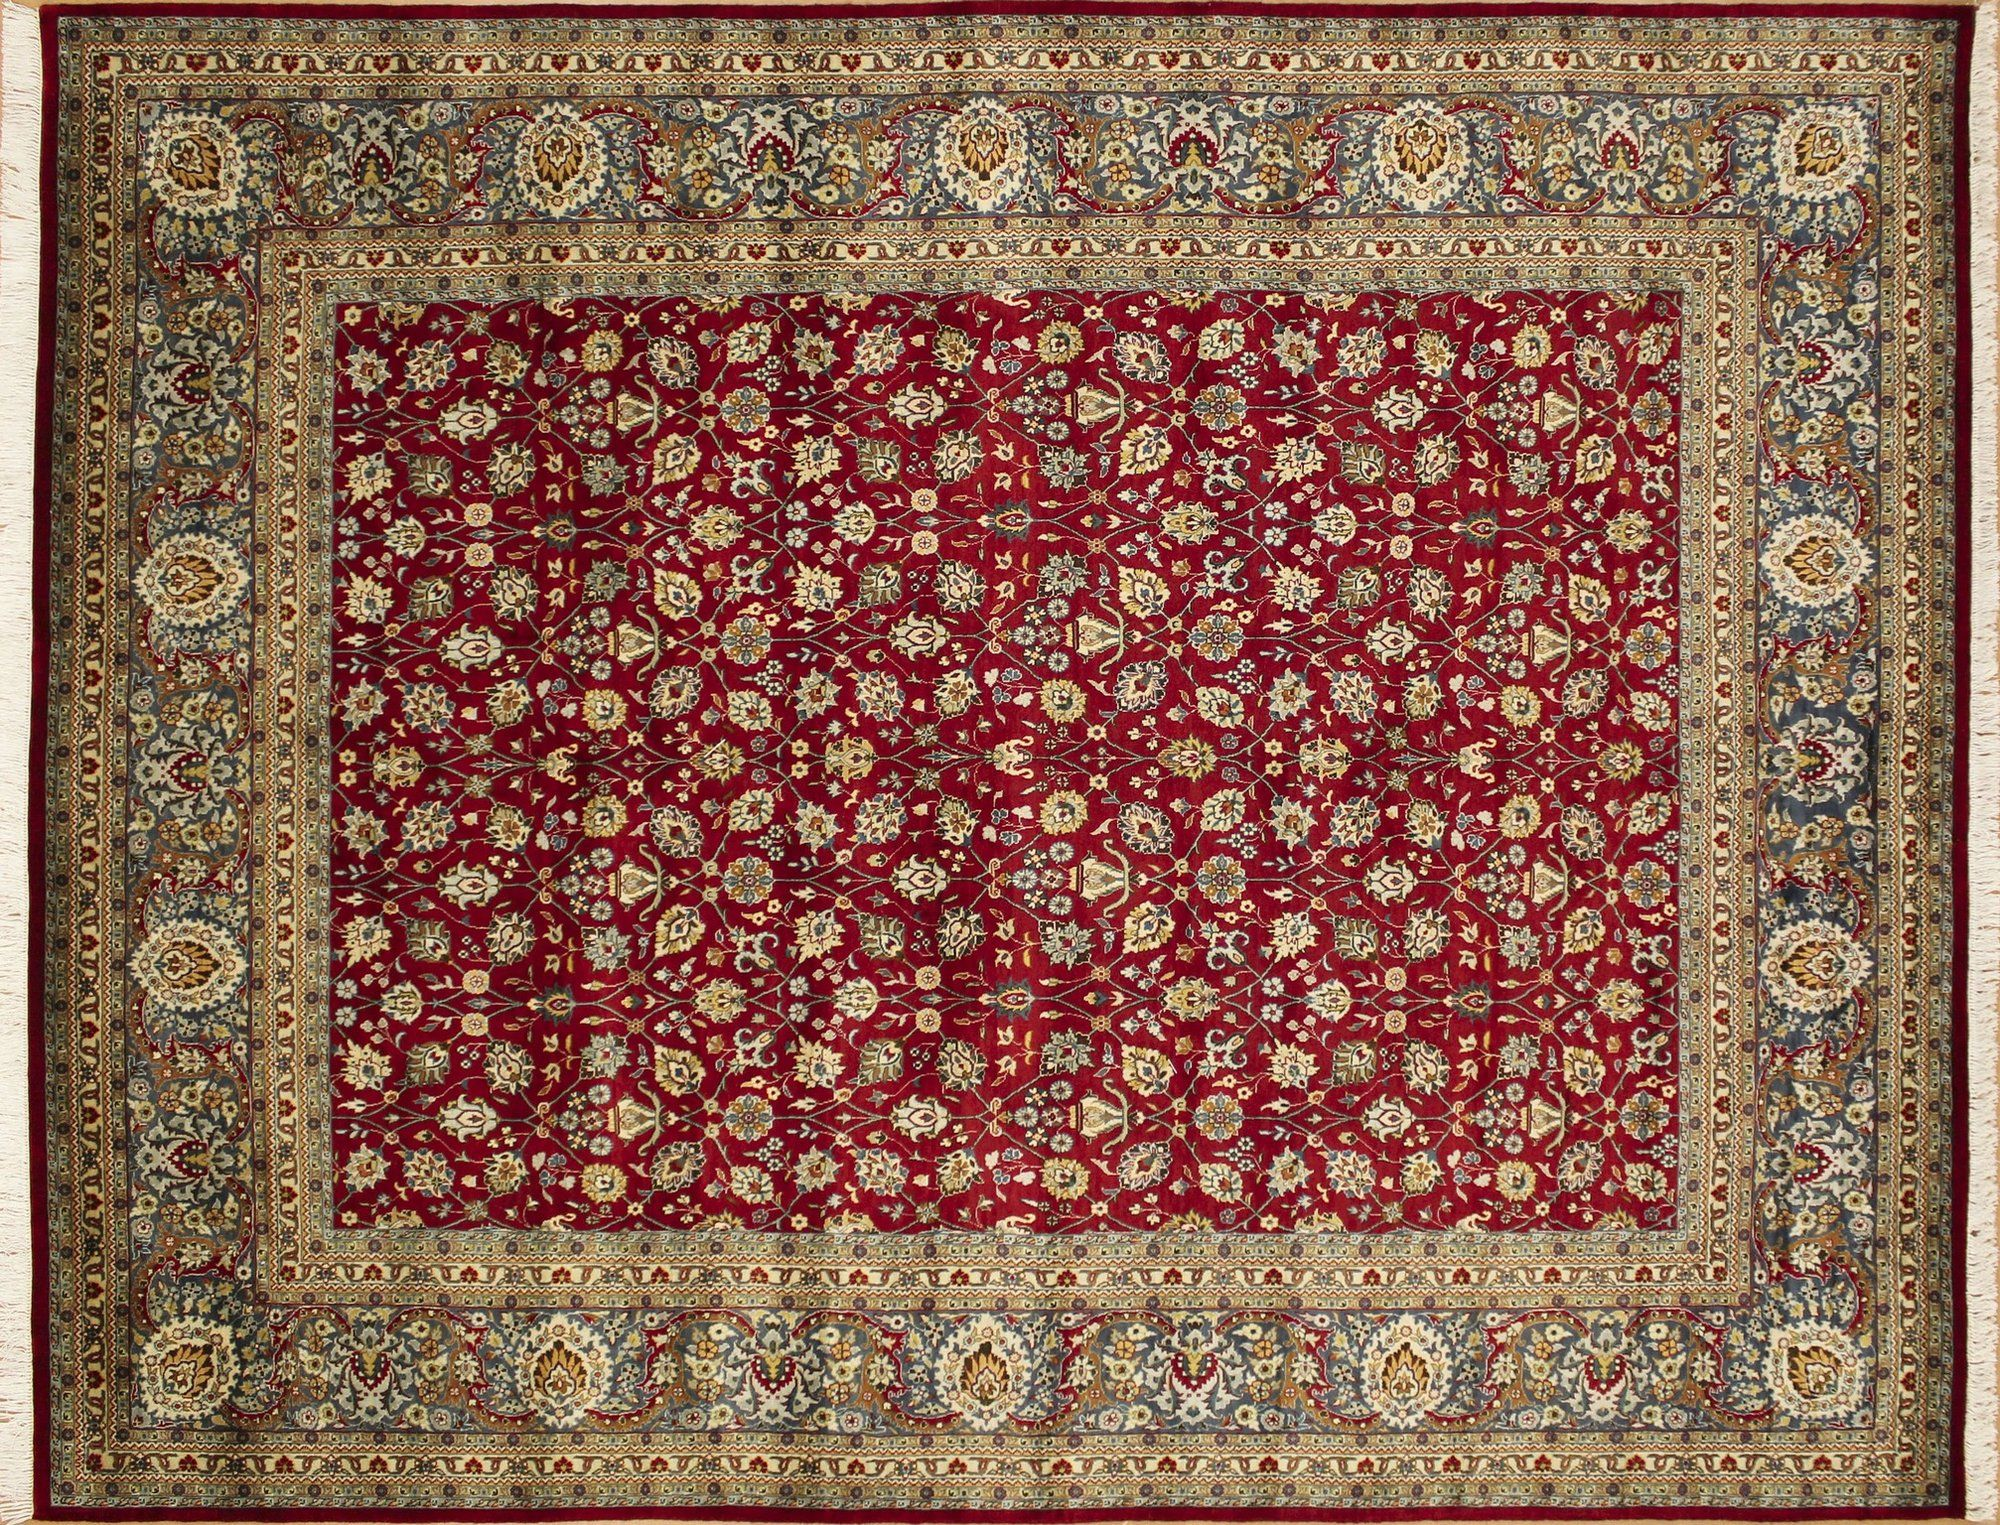 Ankara Loubna Hand-Knotted Red Area Rug